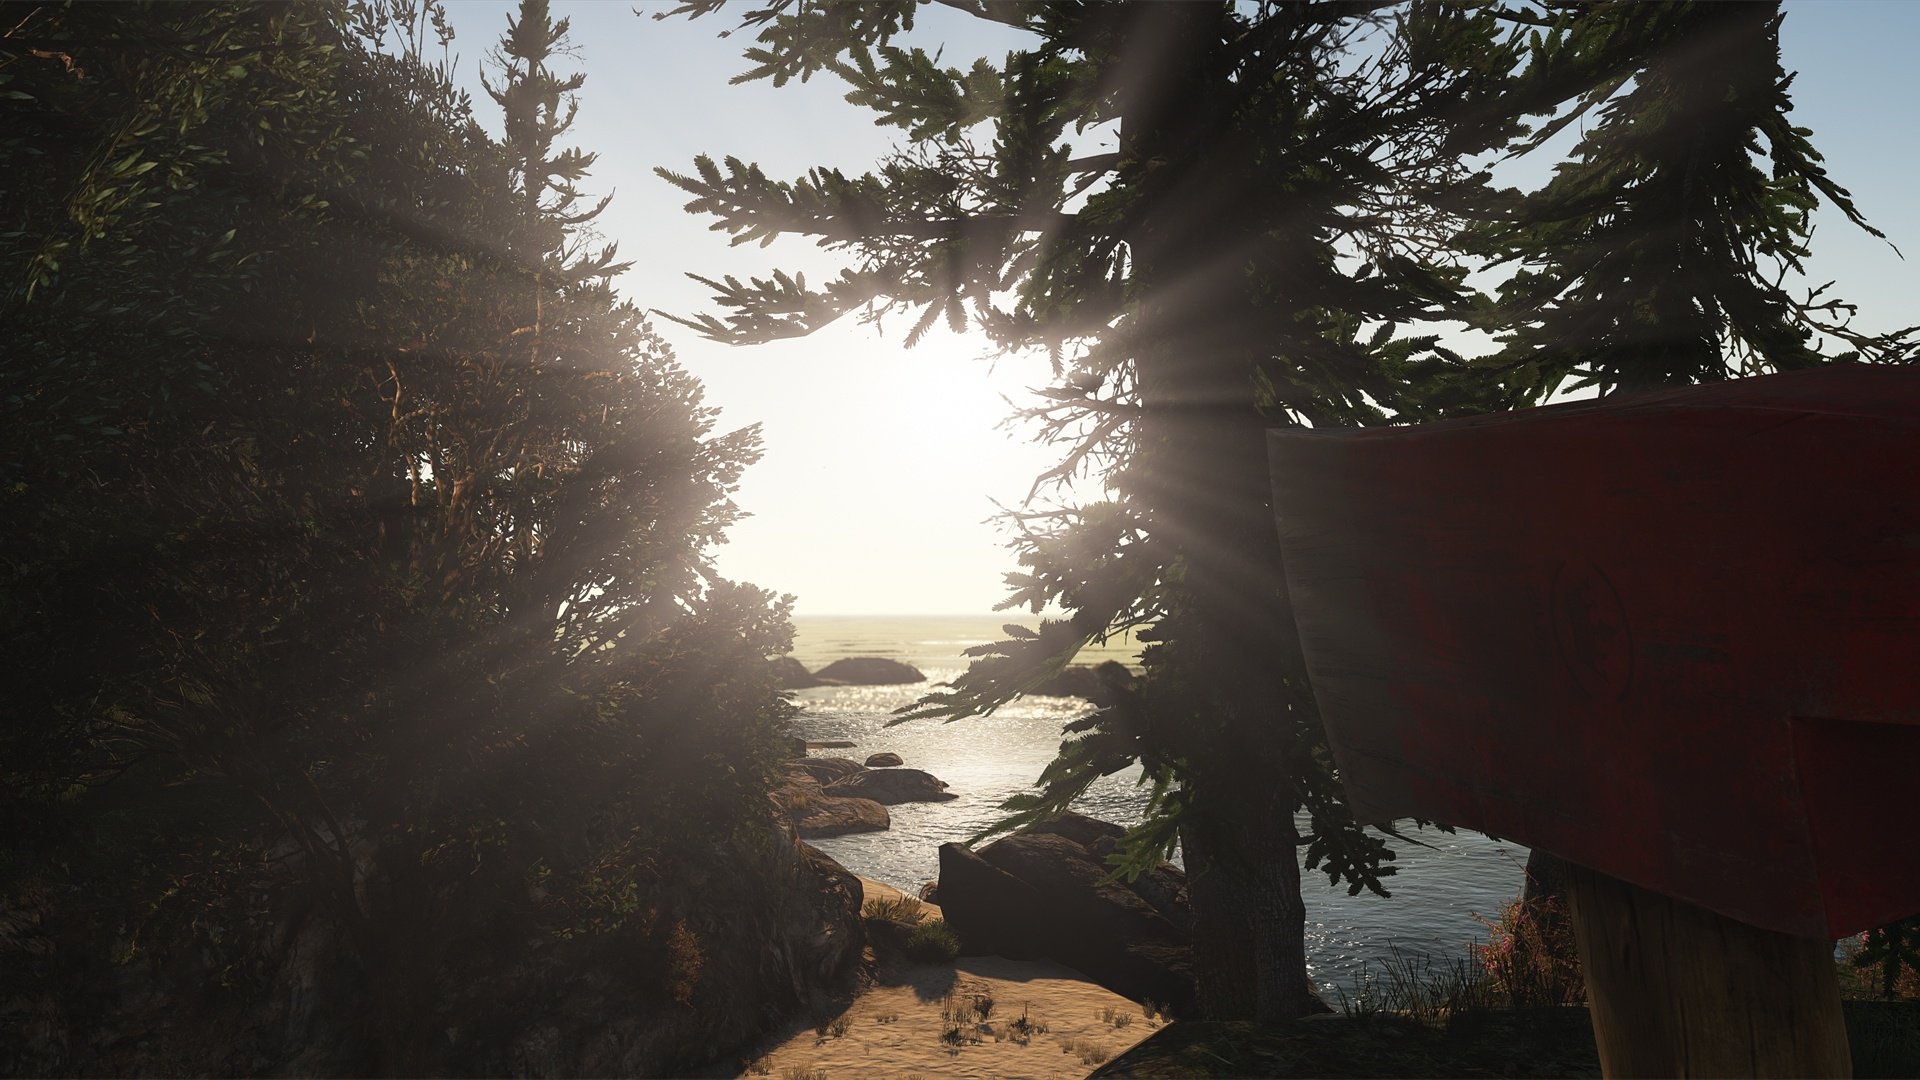 GTA V Still Looks Jaw Dropping With The Latest NaturalVision